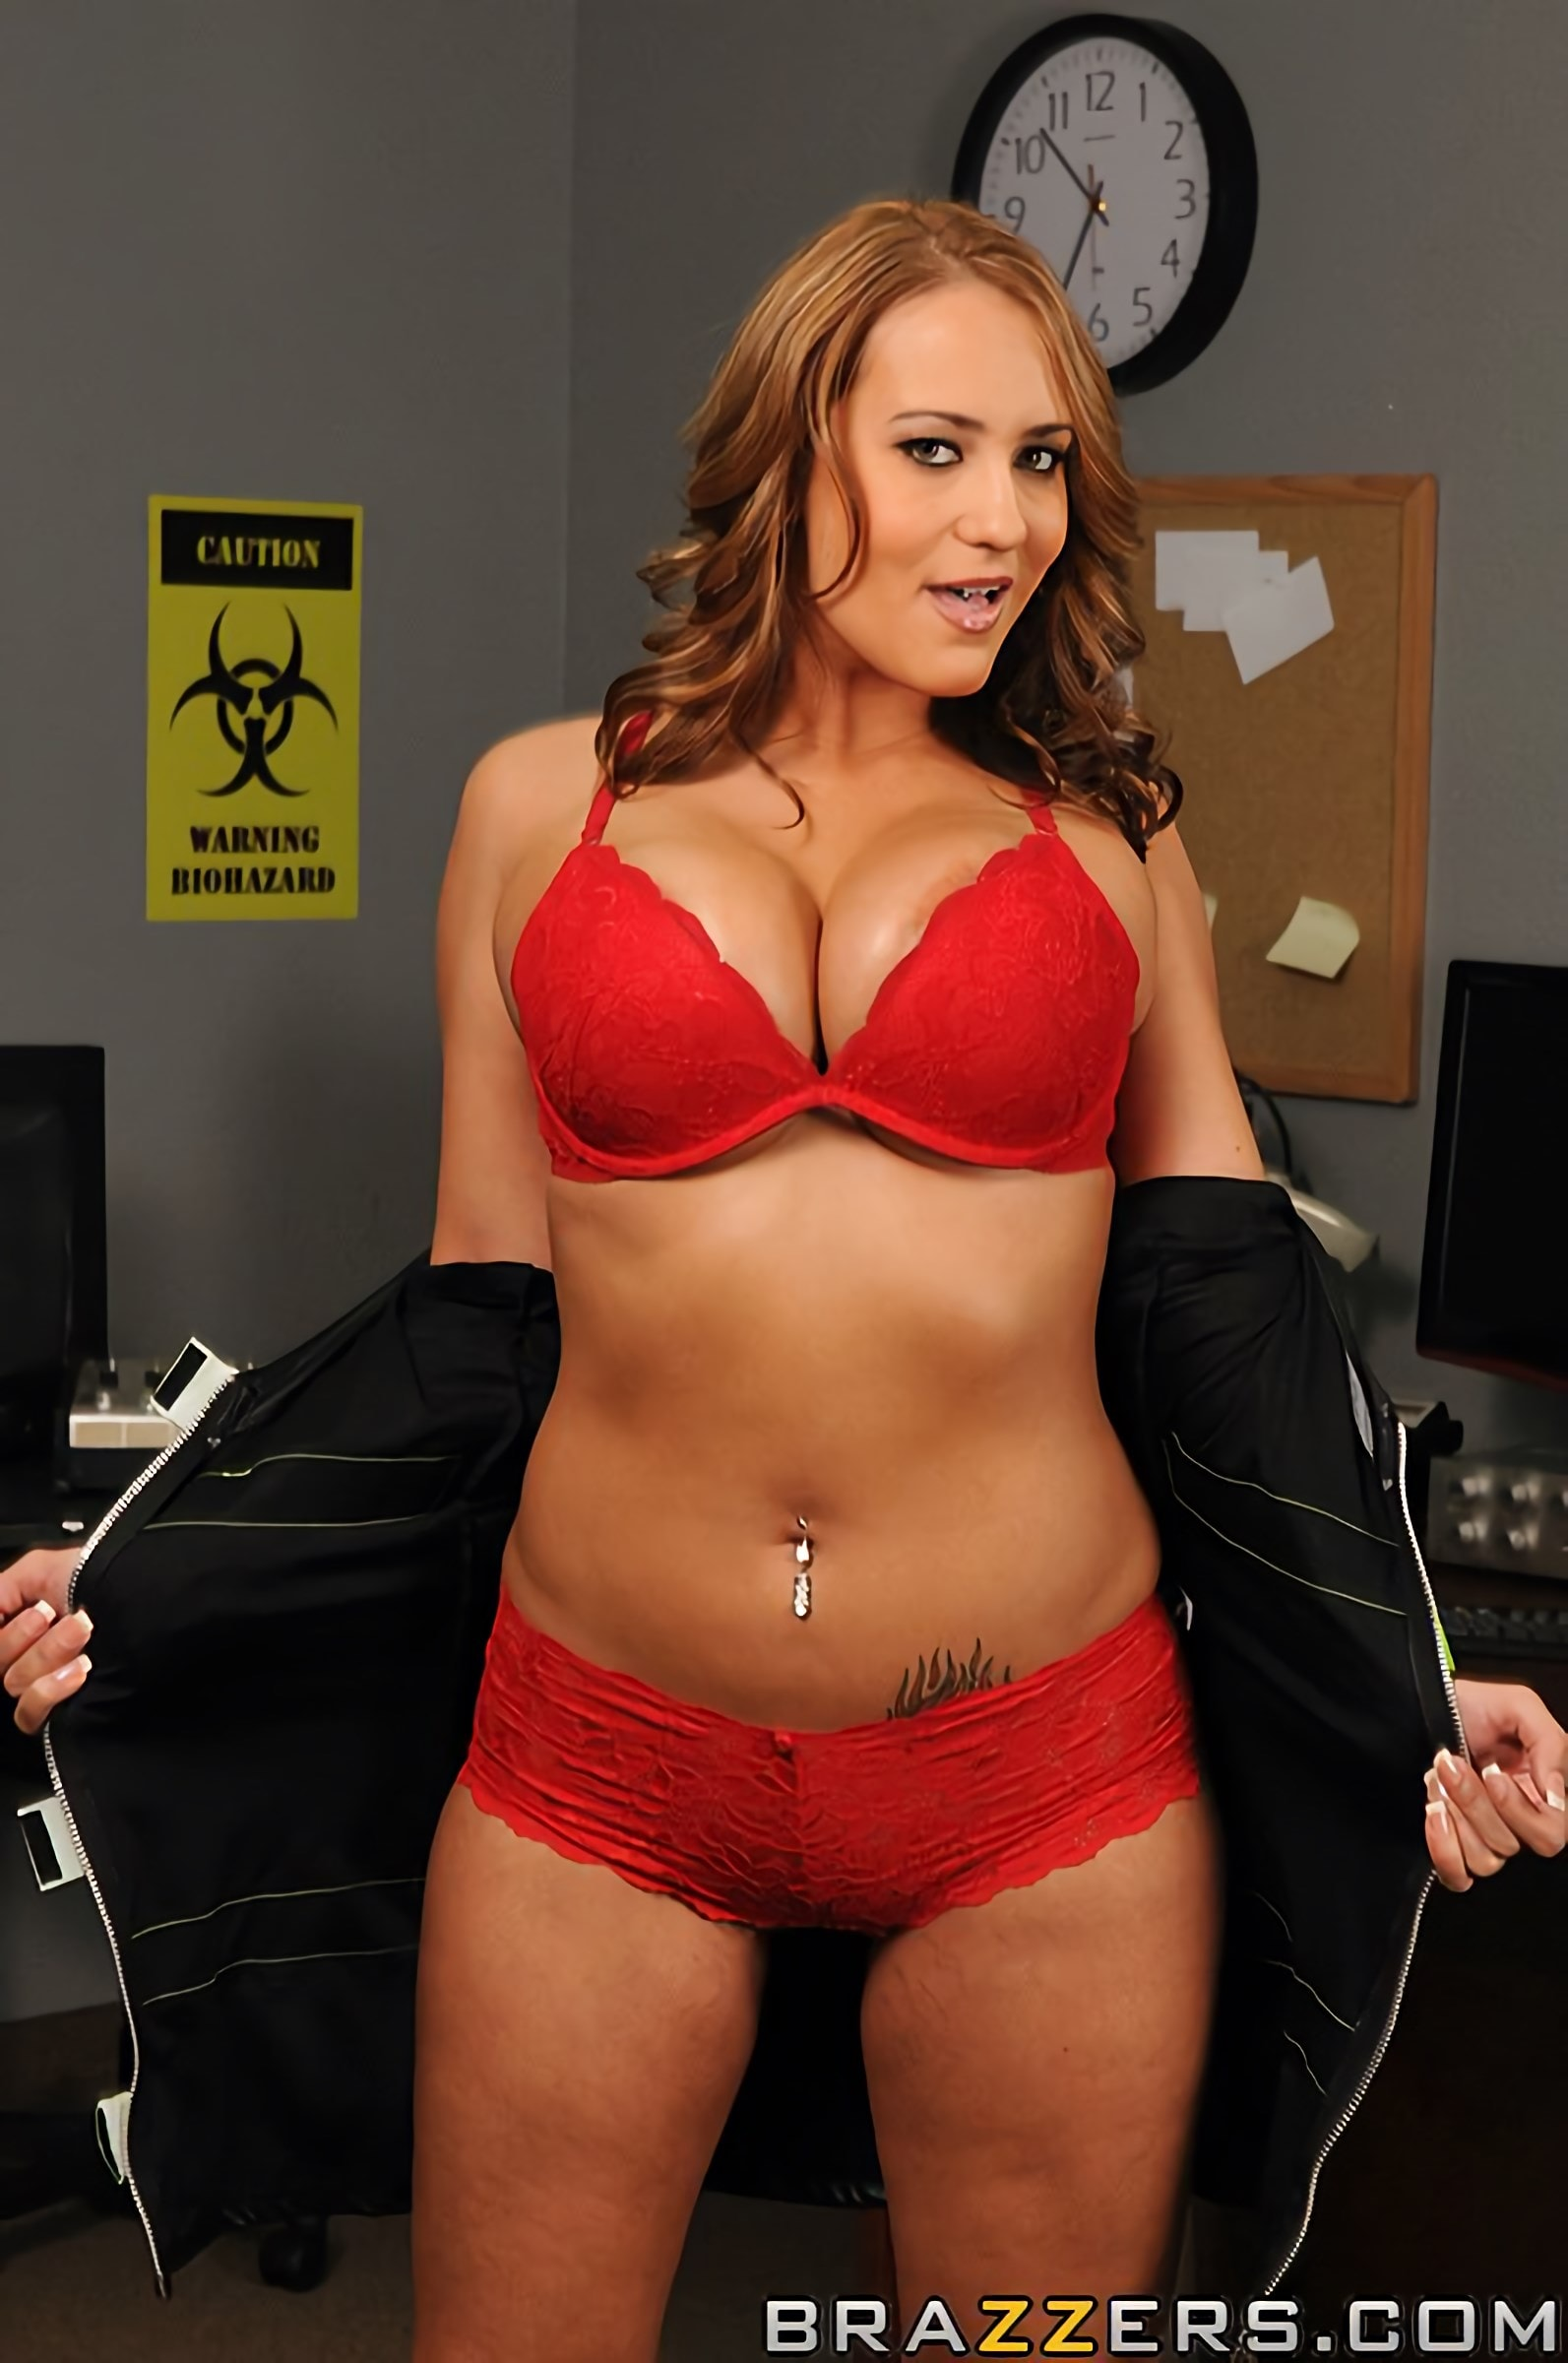 Brazzers 'Nuclear Tits' starring Trina Michaels (Photo 3)